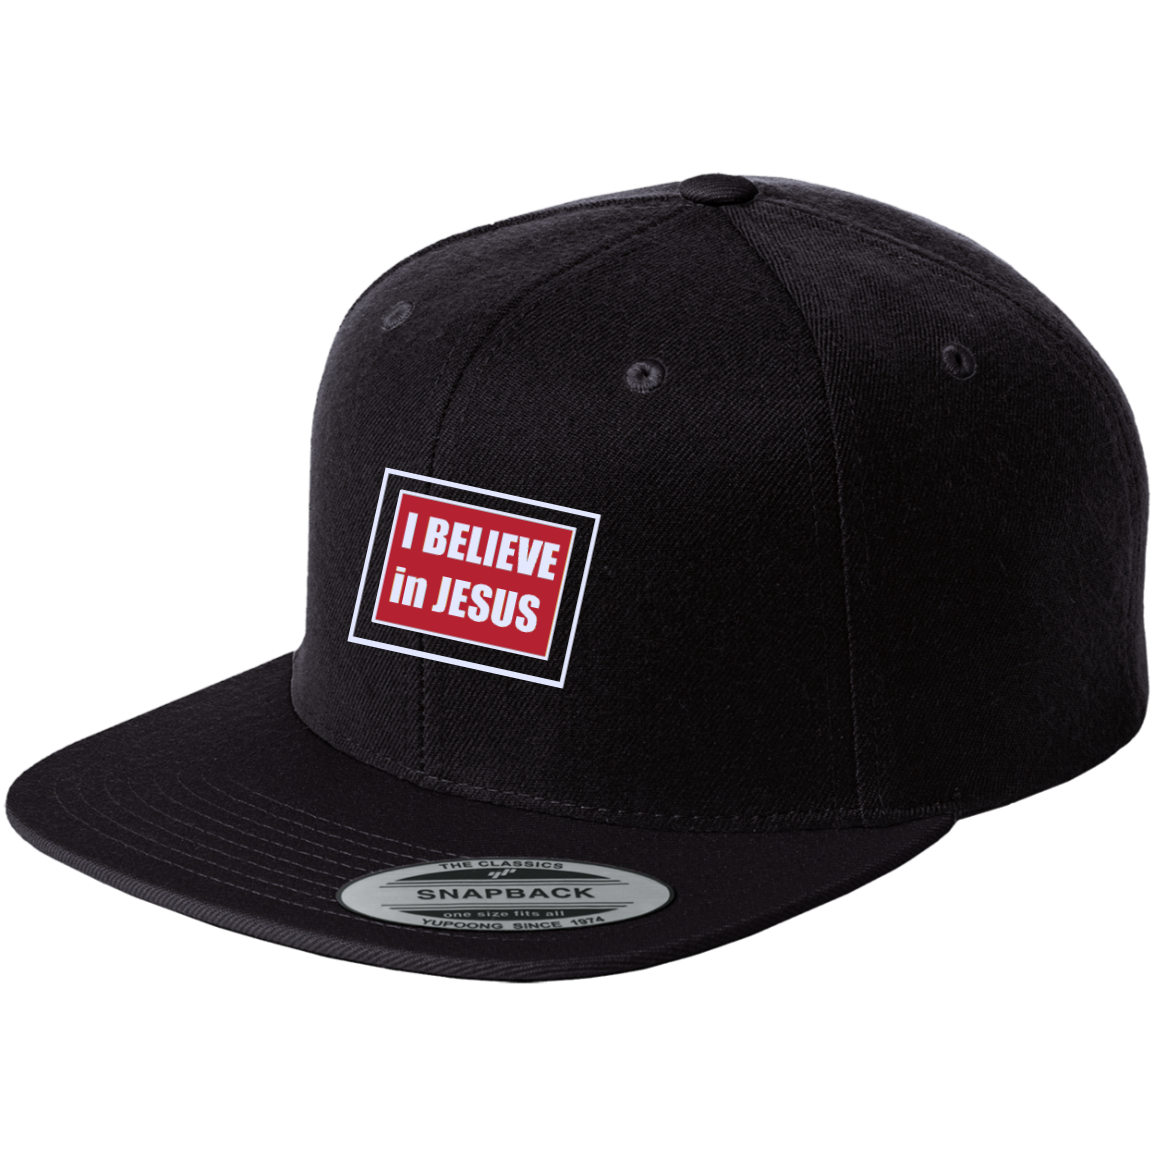 I BELIEVE Embroidered Logo, Flat Bill, High-Profile Snapback Cap (+COLOURS)